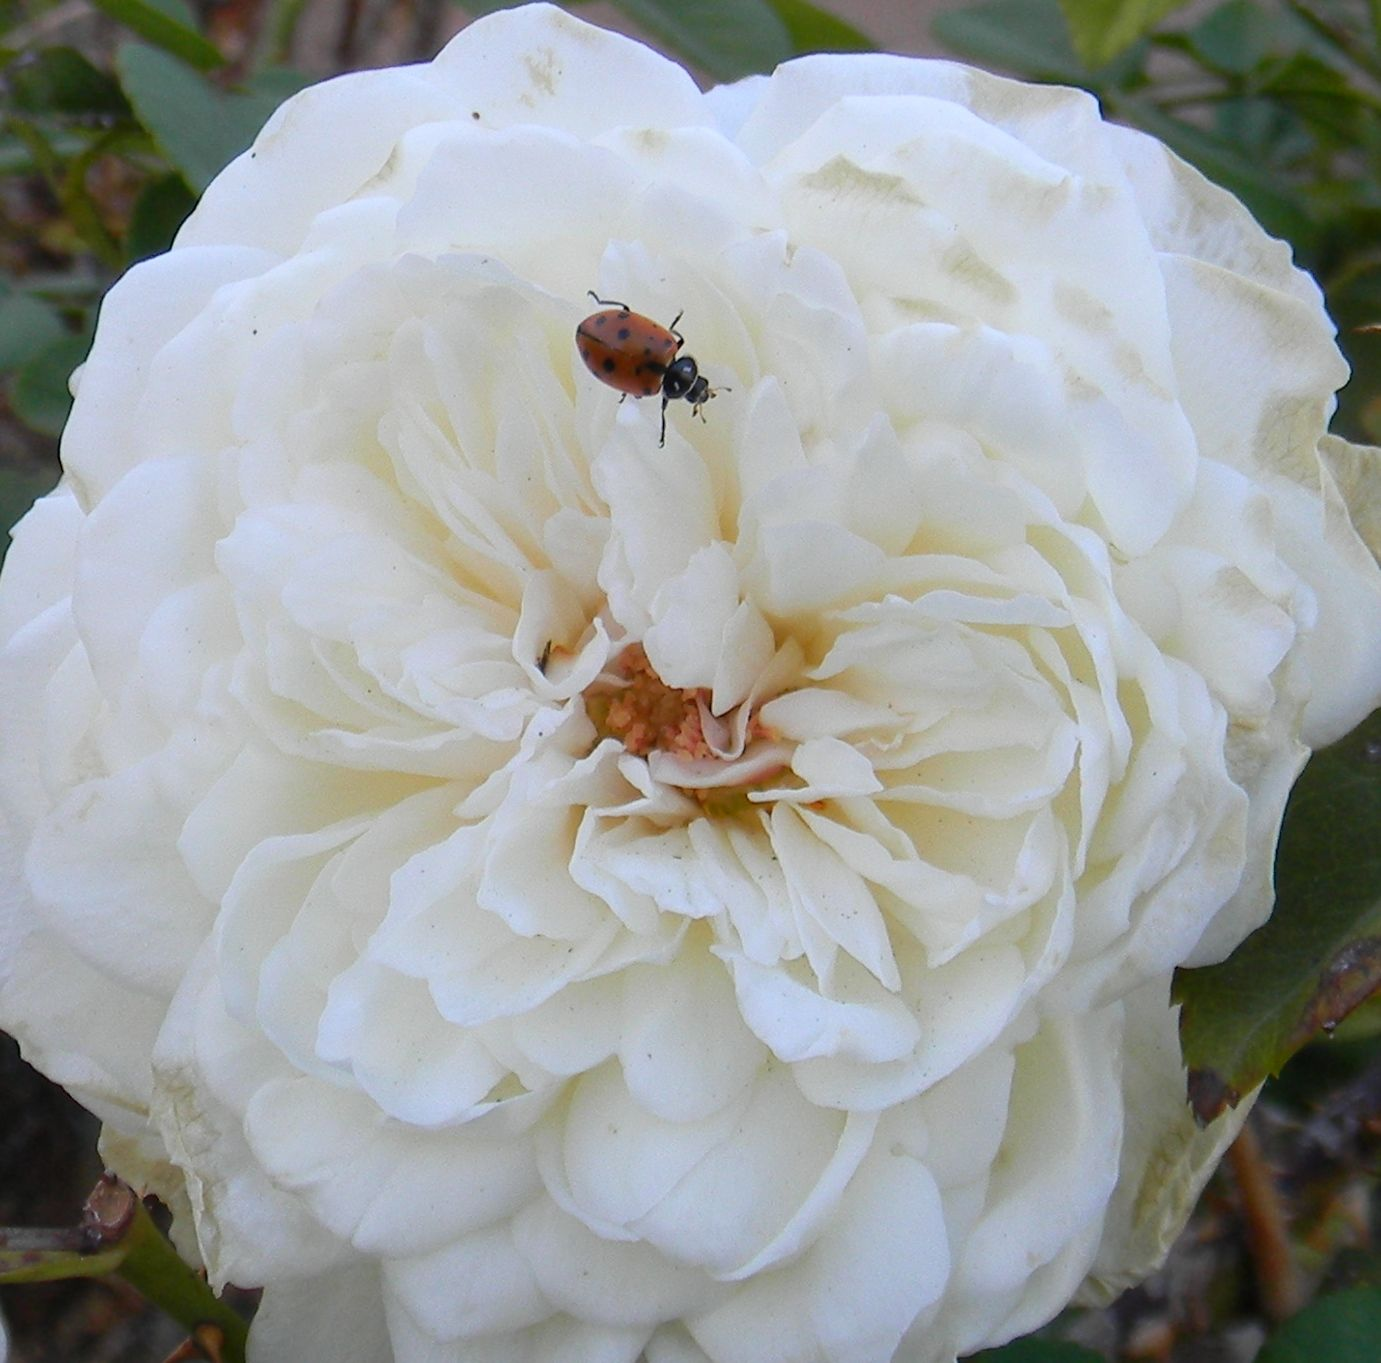 Glamis Castle English rose being patrolled by Hippodamia